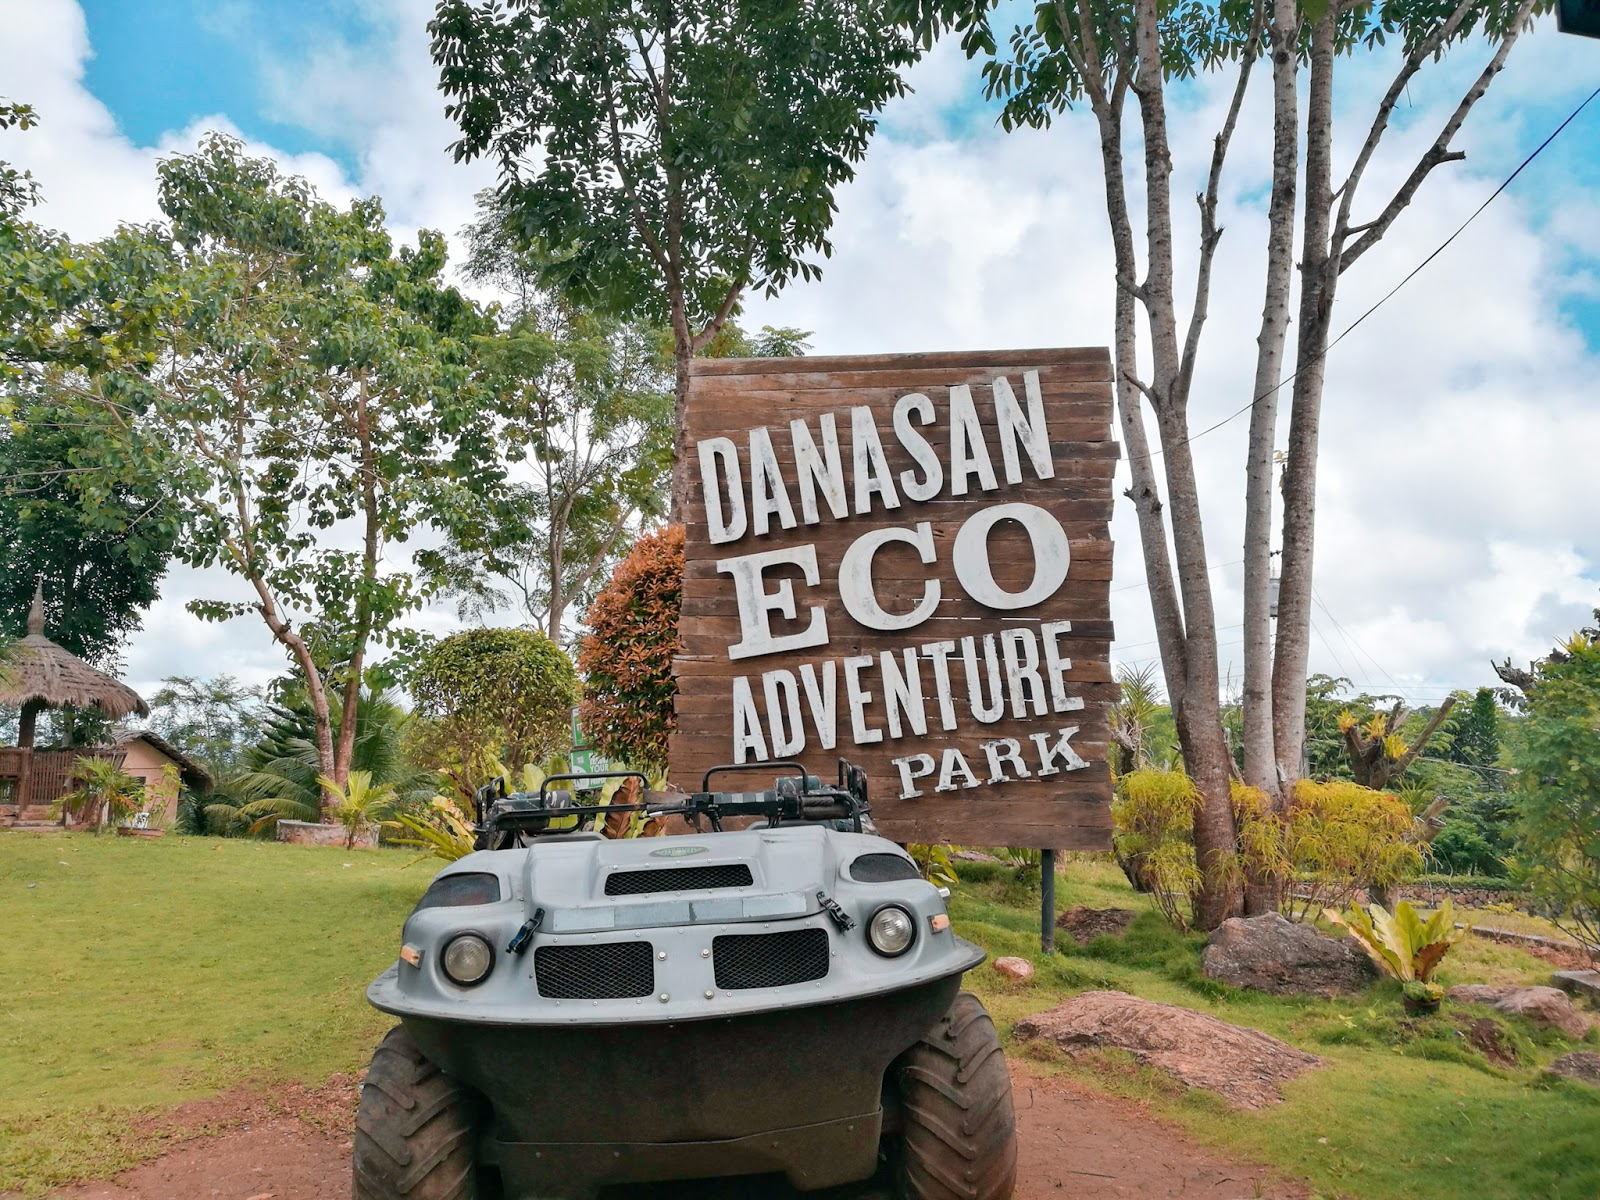 Danasan Eco Adventure Park: The Perfect Place for Thrill-Seekers